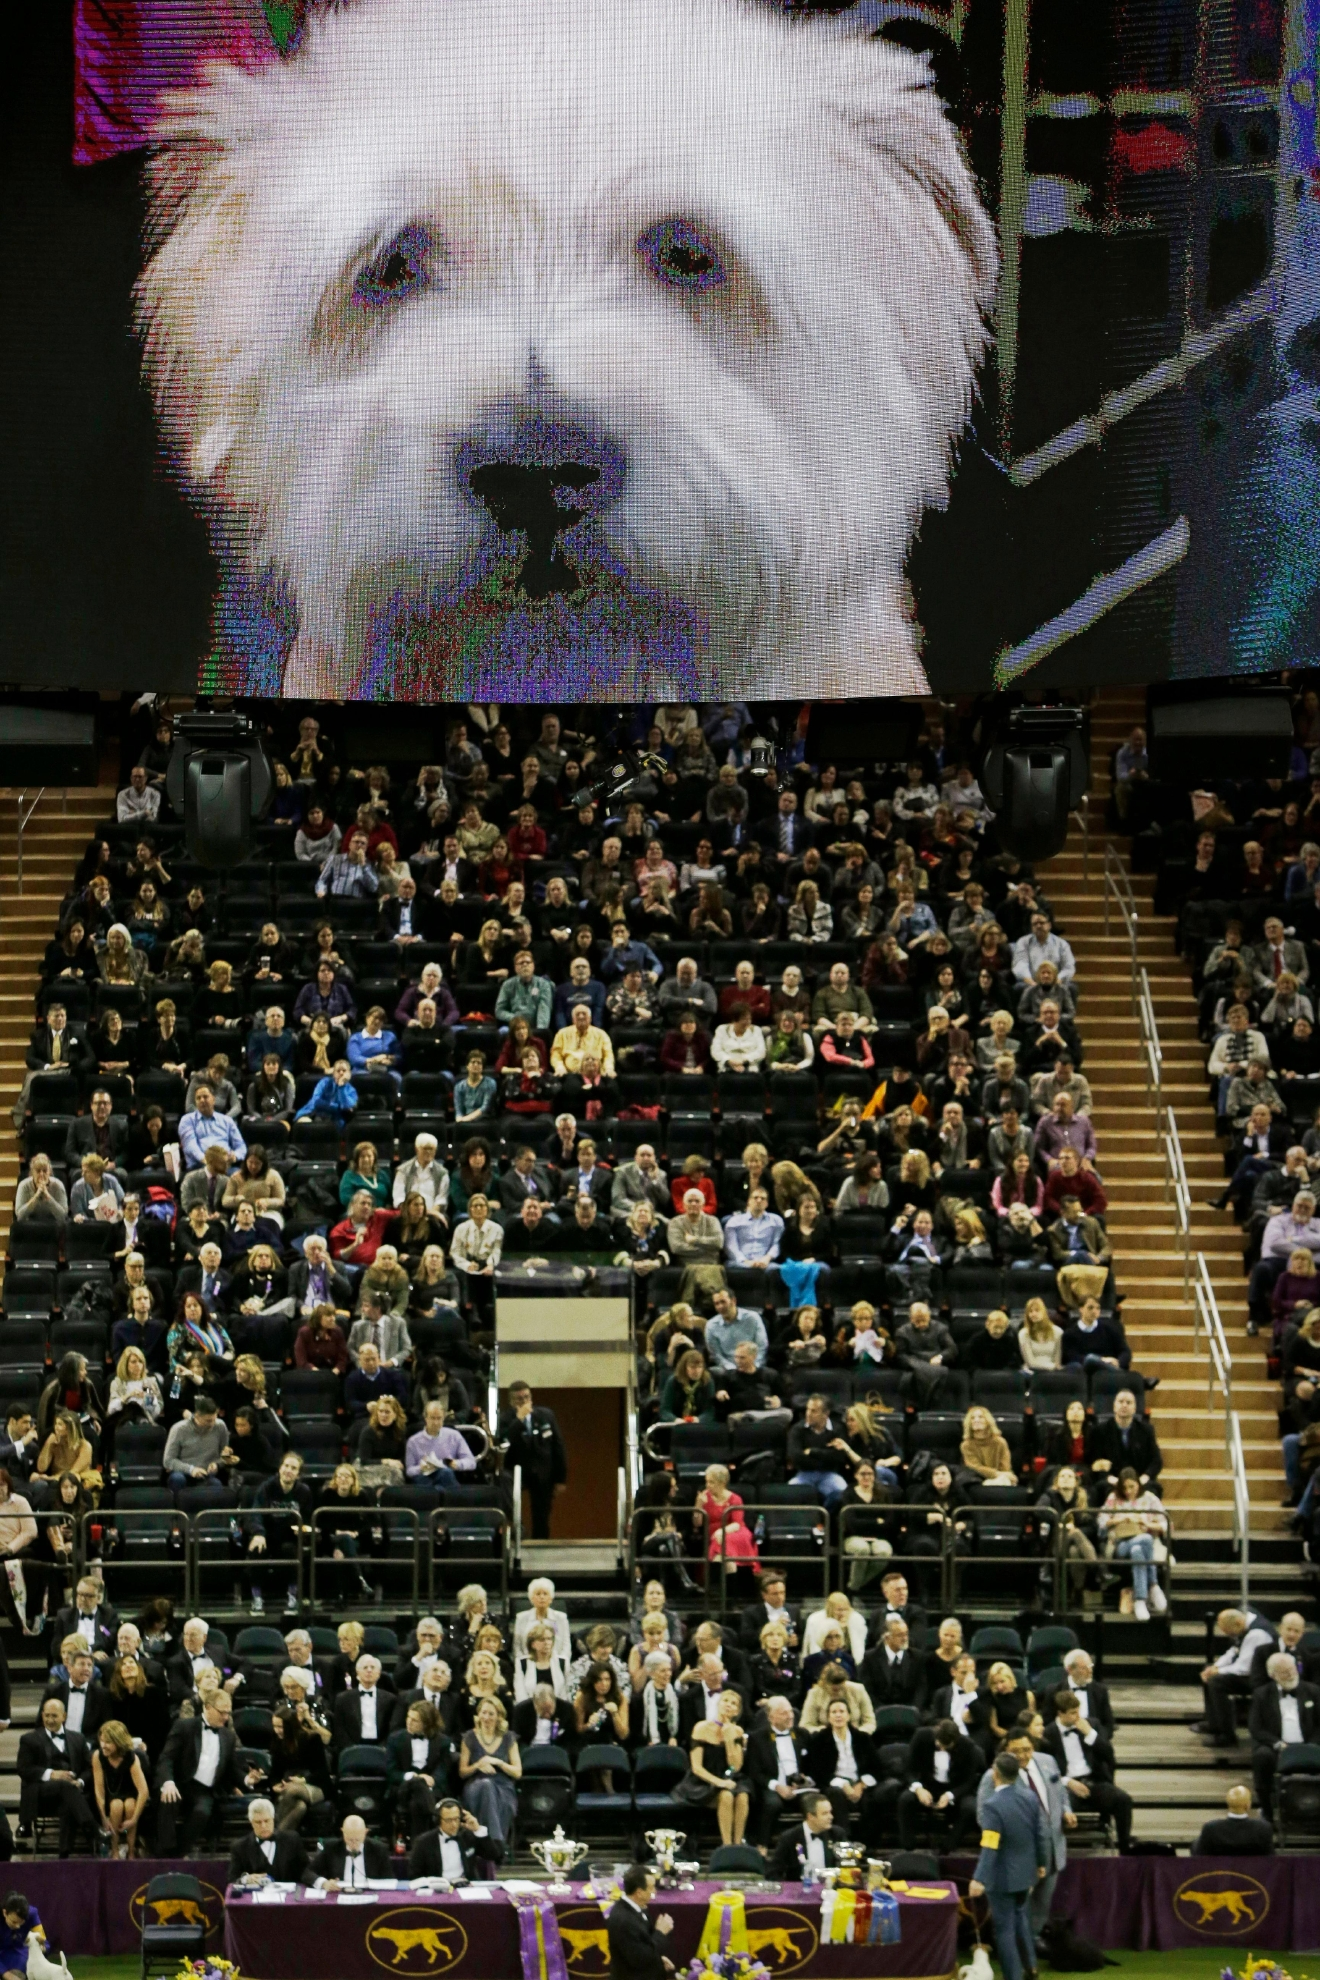 People watch as Taylor, a Glen of Imaal terrier, competes with the terrier group during the 141st Westminster Kennel Club Dog Show Tuesday, Feb. 14, 2017, in New York. (AP Photo/Frank Franklin II)